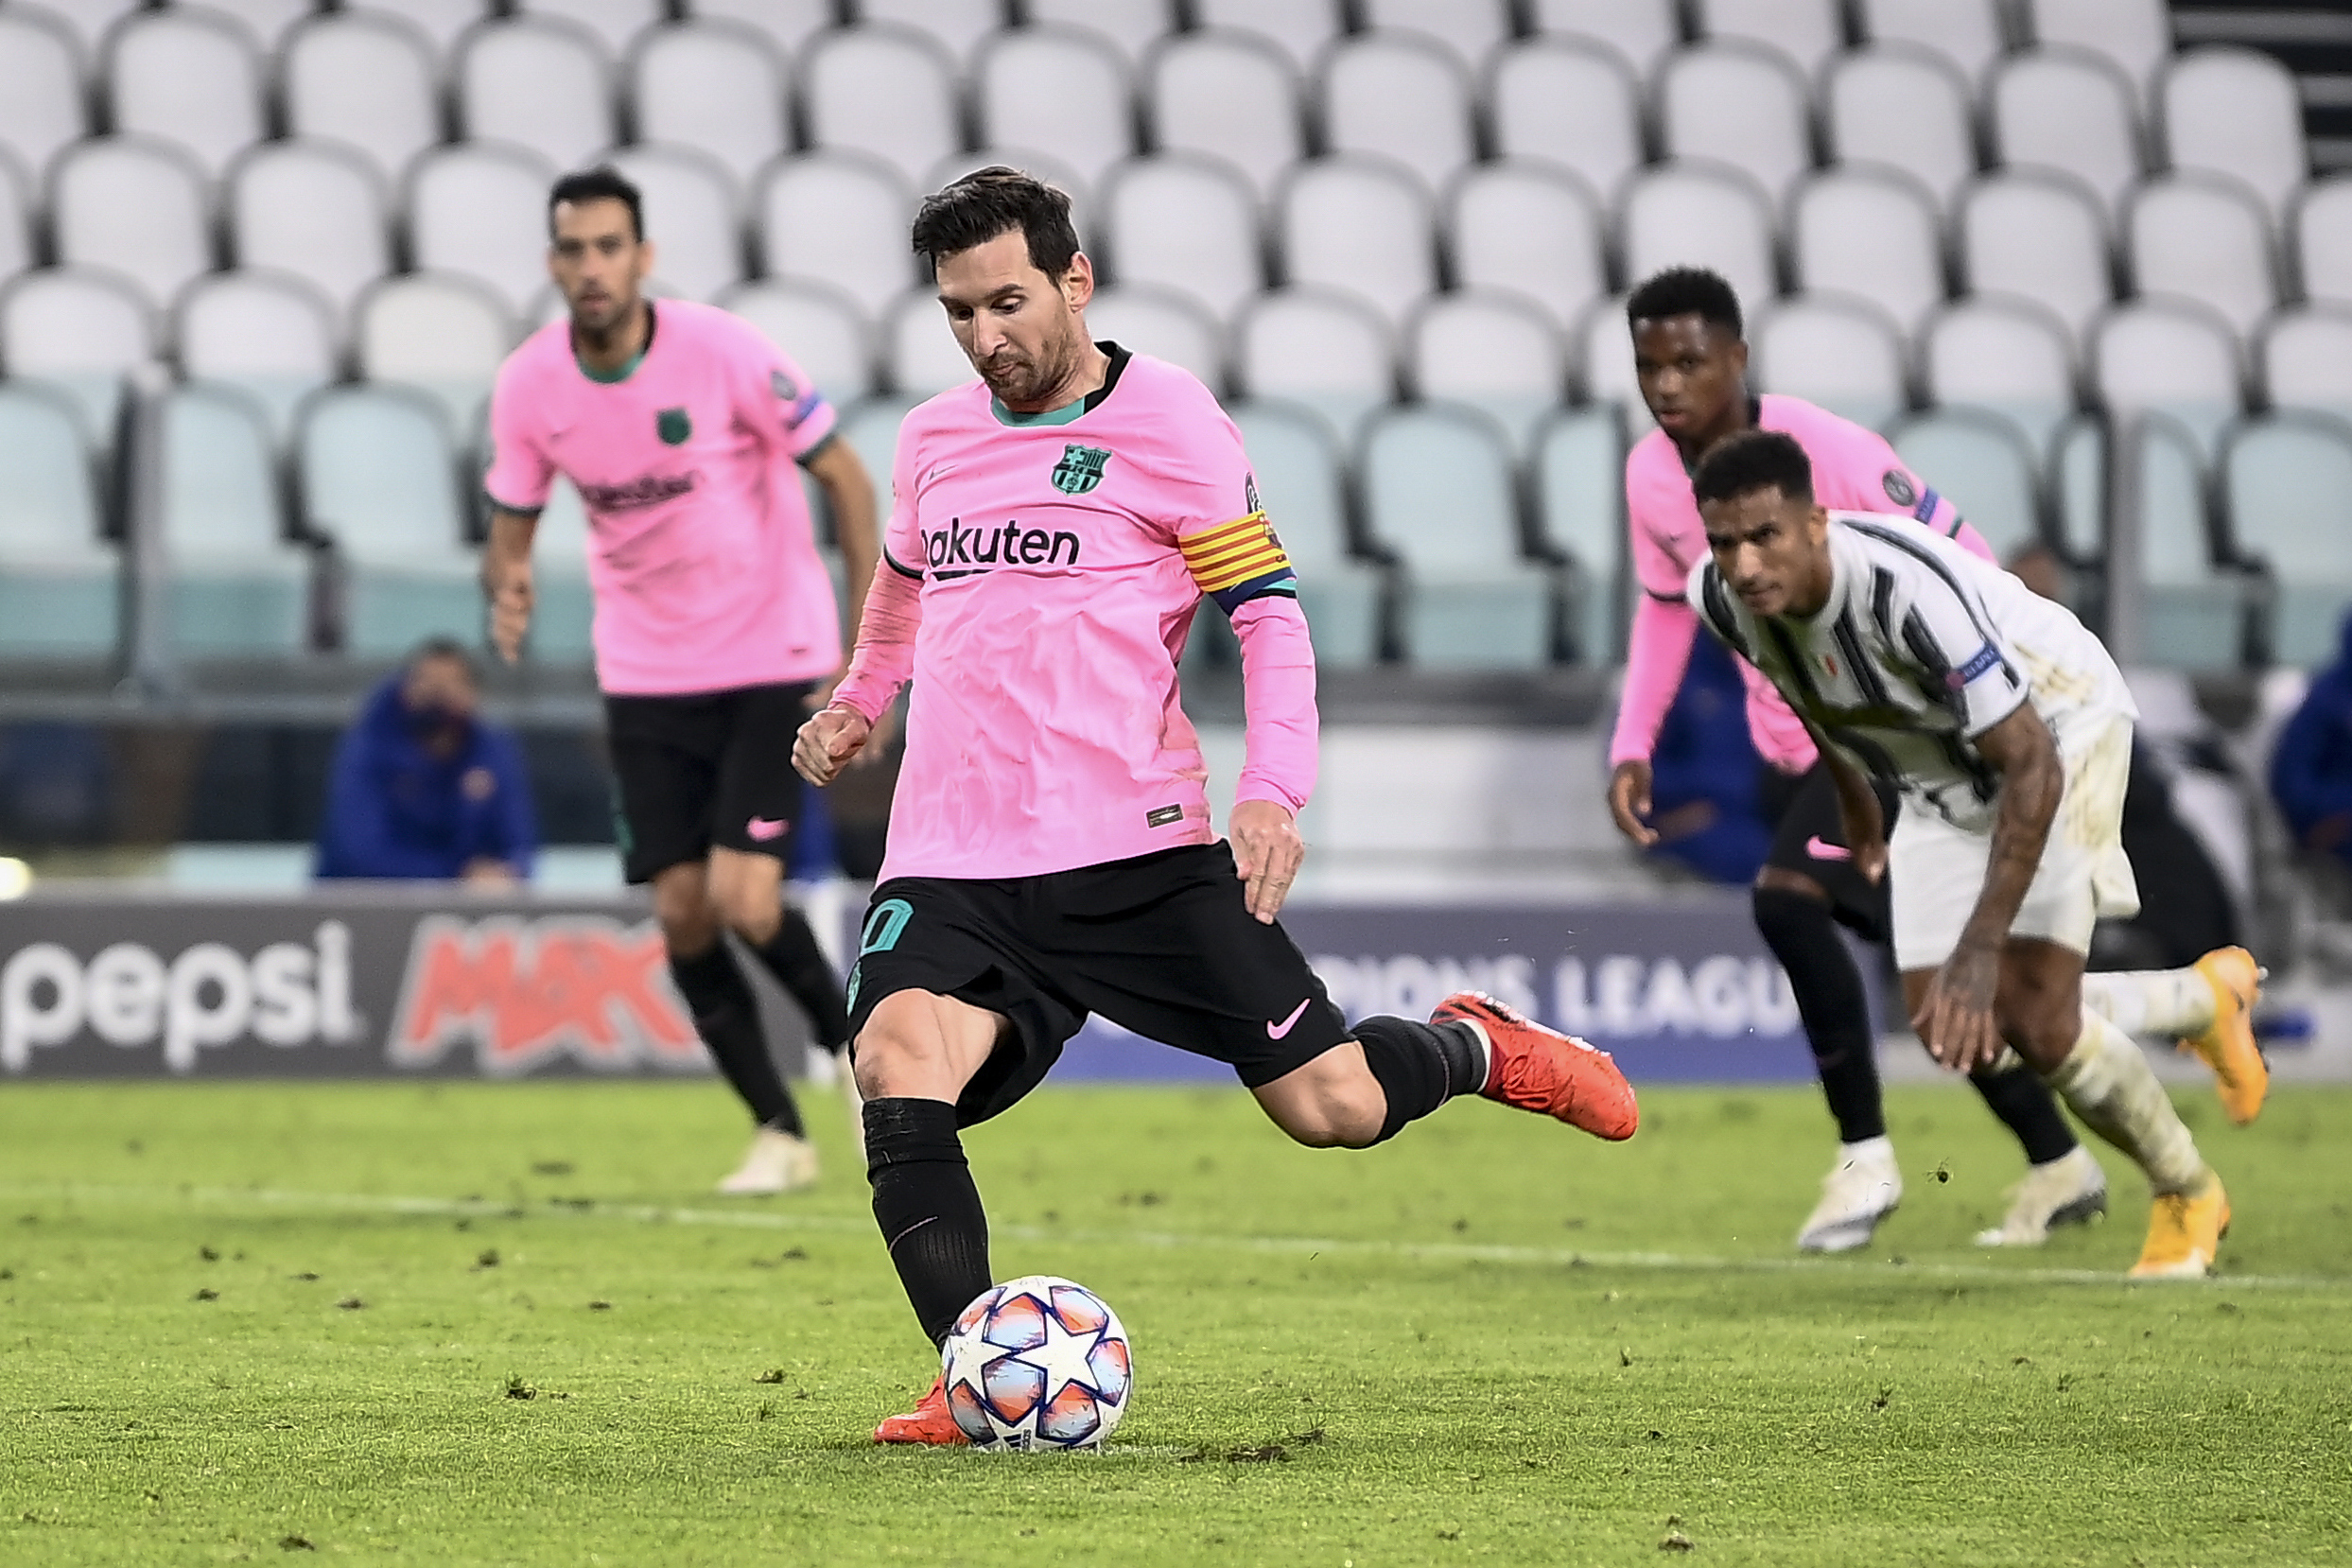 Fc Barcelona Vs Dynamo Kiev Free Live Stream 11 4 20 Watch Lionel Messi In Uefa Champions League Group Stage Online Time Usa Tv Channel Nj Com